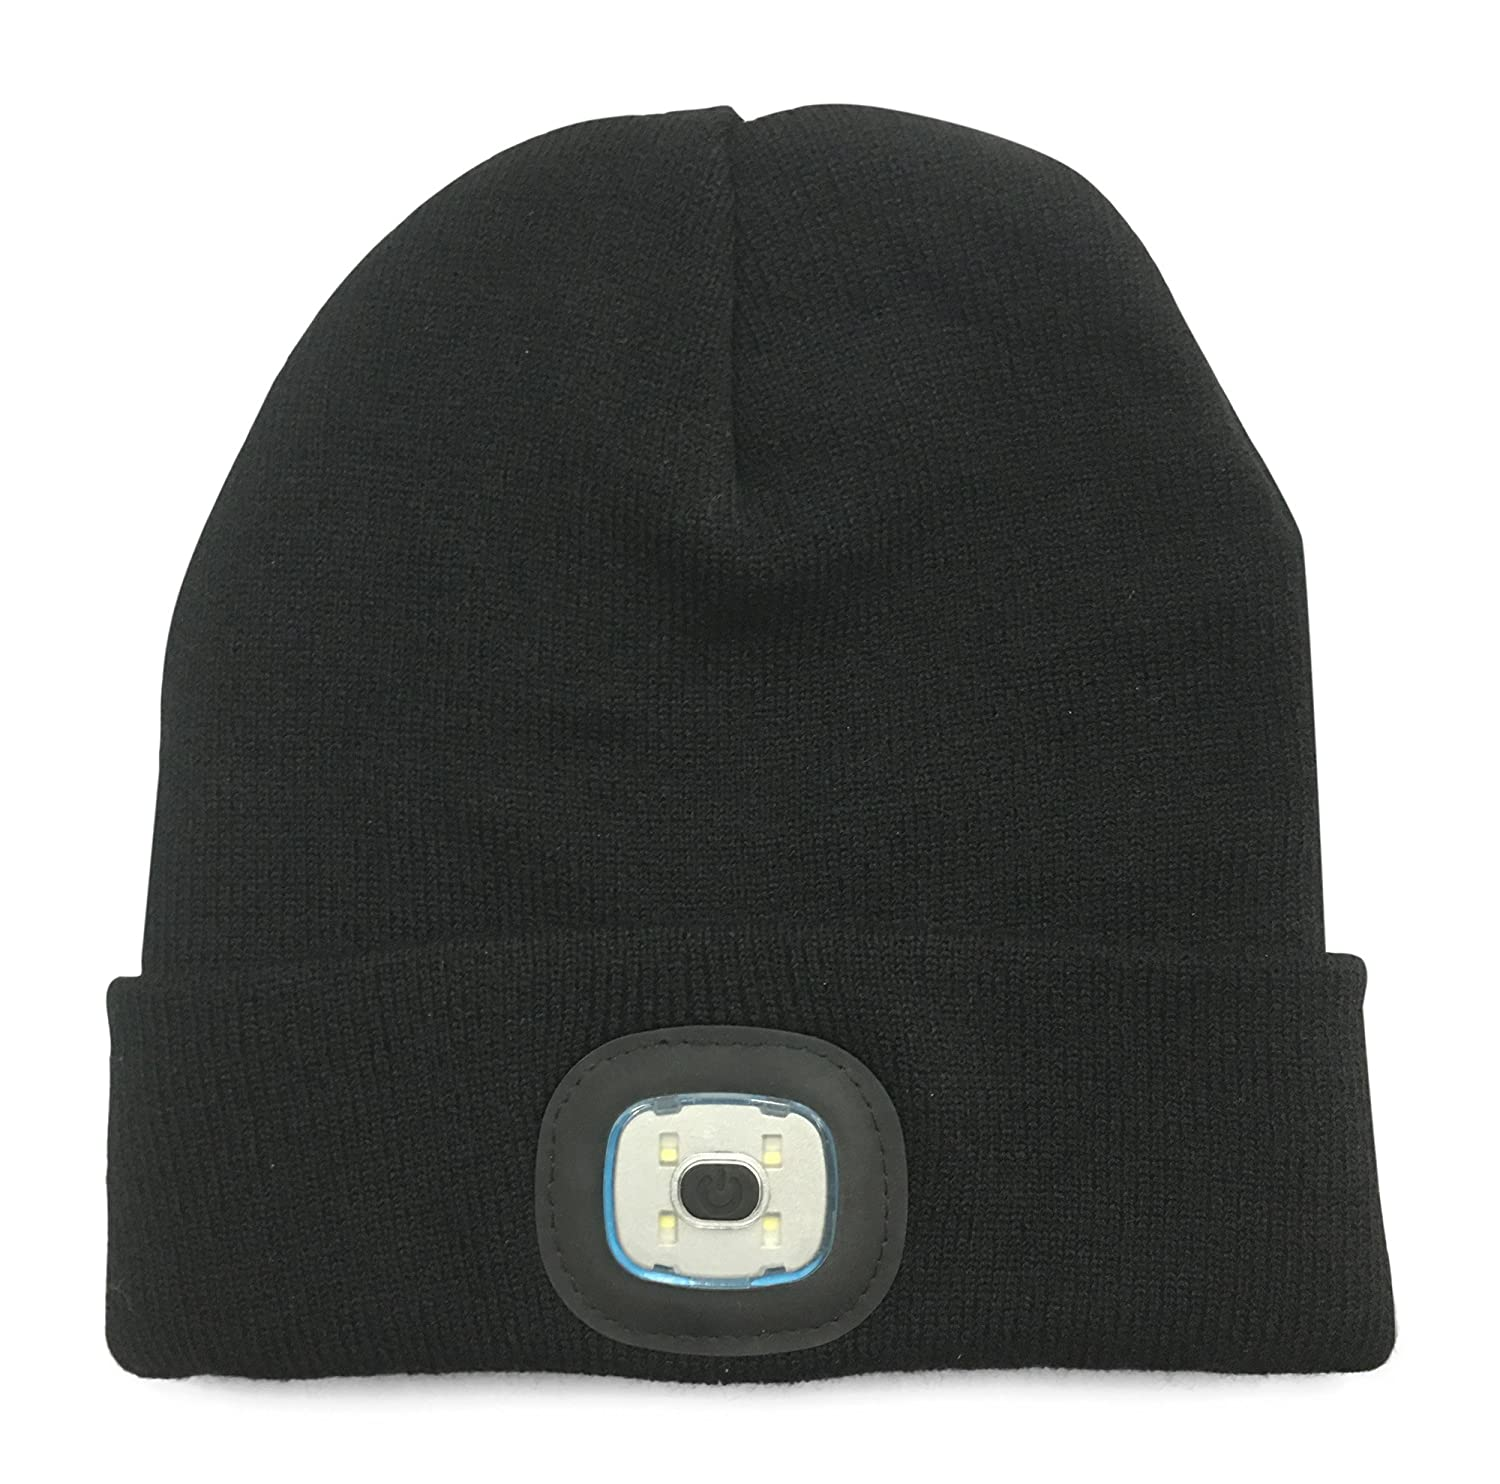 Beanie With 5 Built-in LED Flashlight - Hands-Free Hat: Amazon.co.uk ...